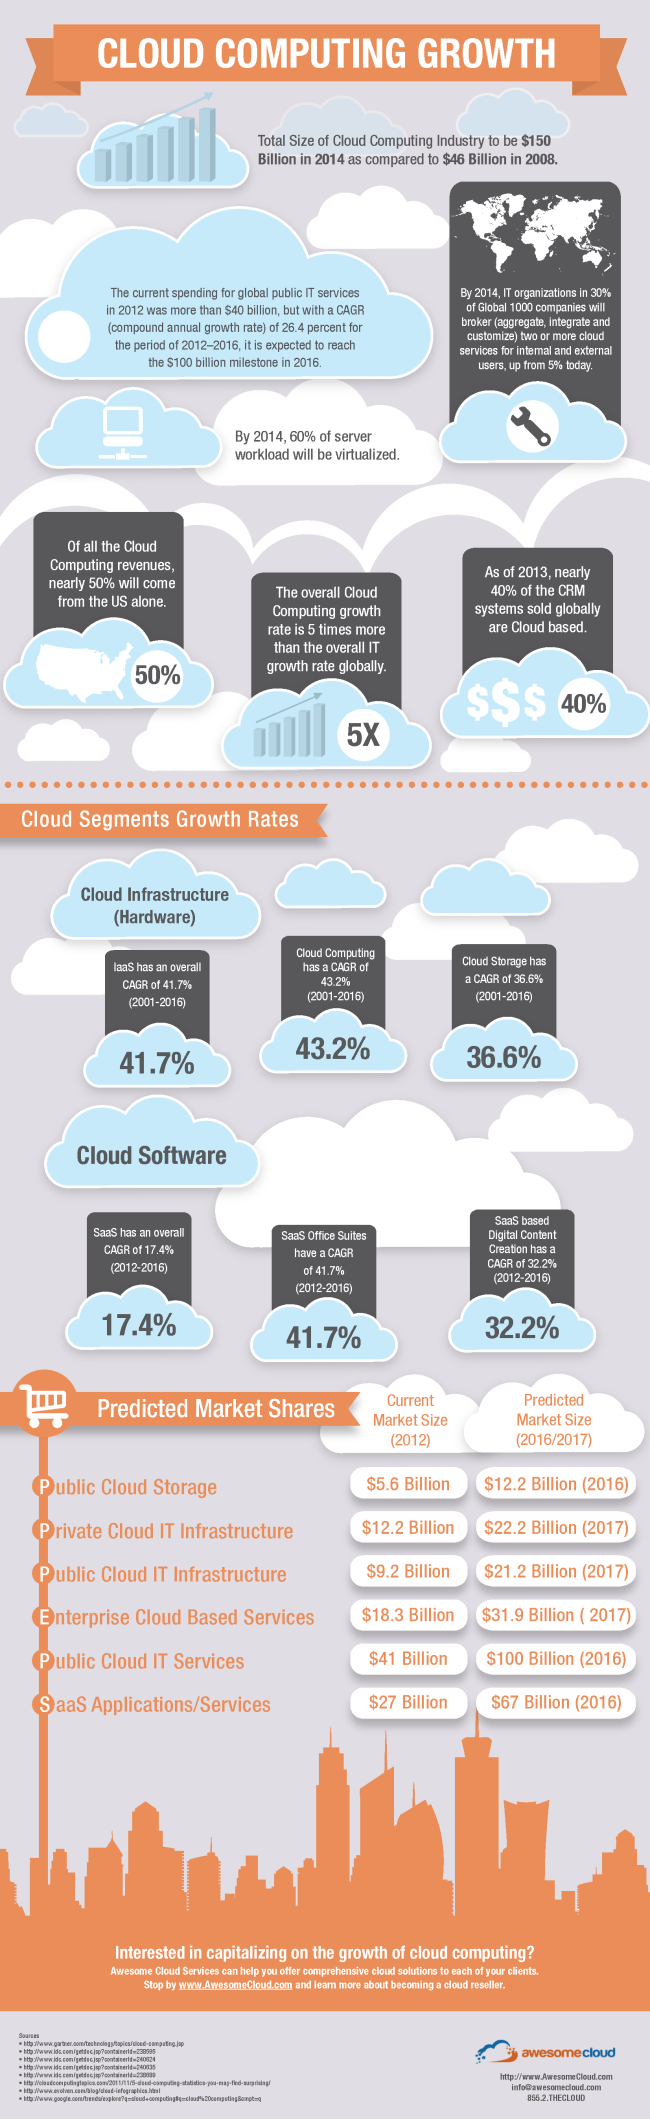 Cloud Computing Growth Infographic